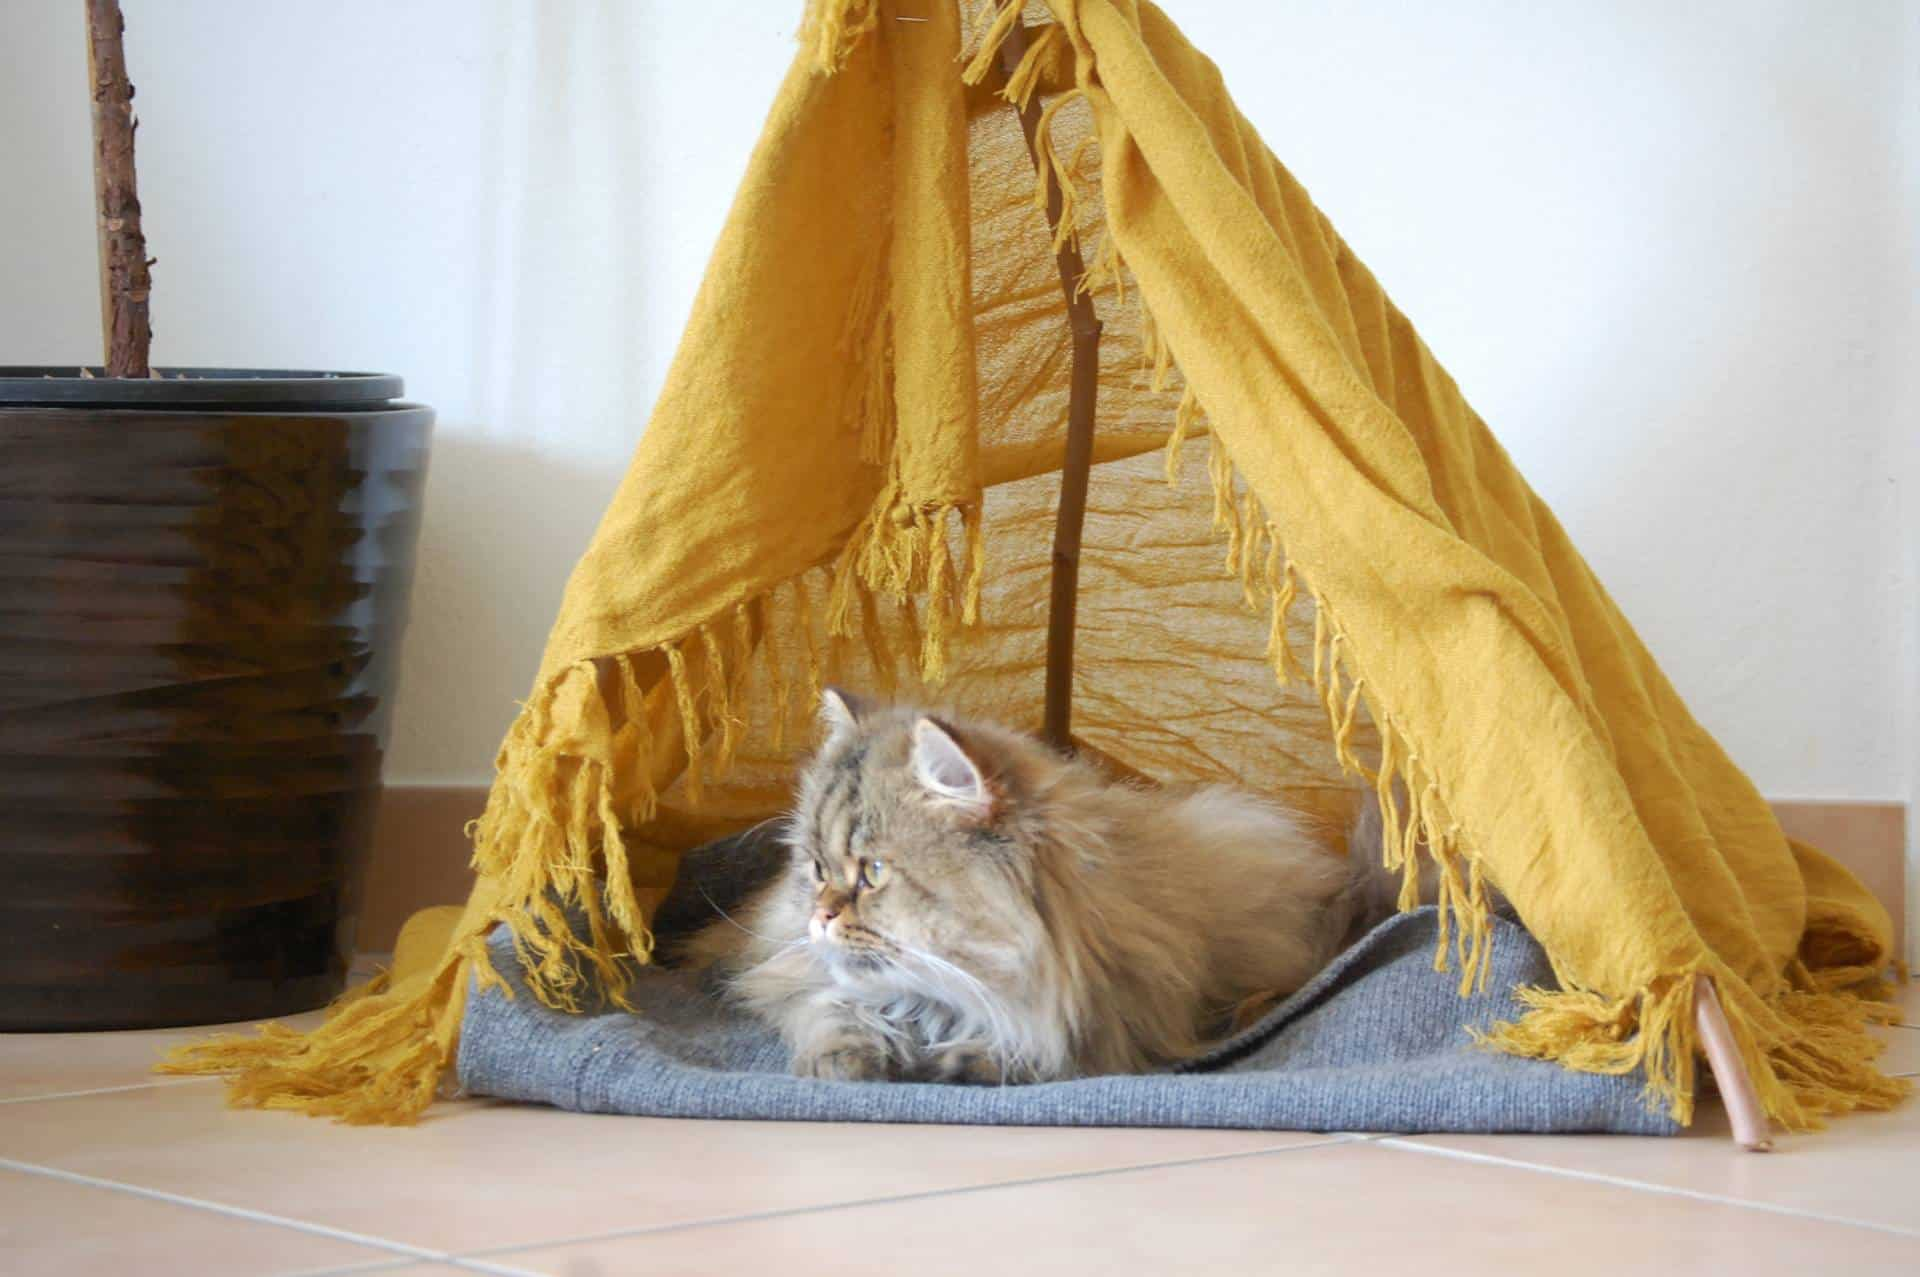 Feline love adorable diy projects for cat owners for Diy cat teepee